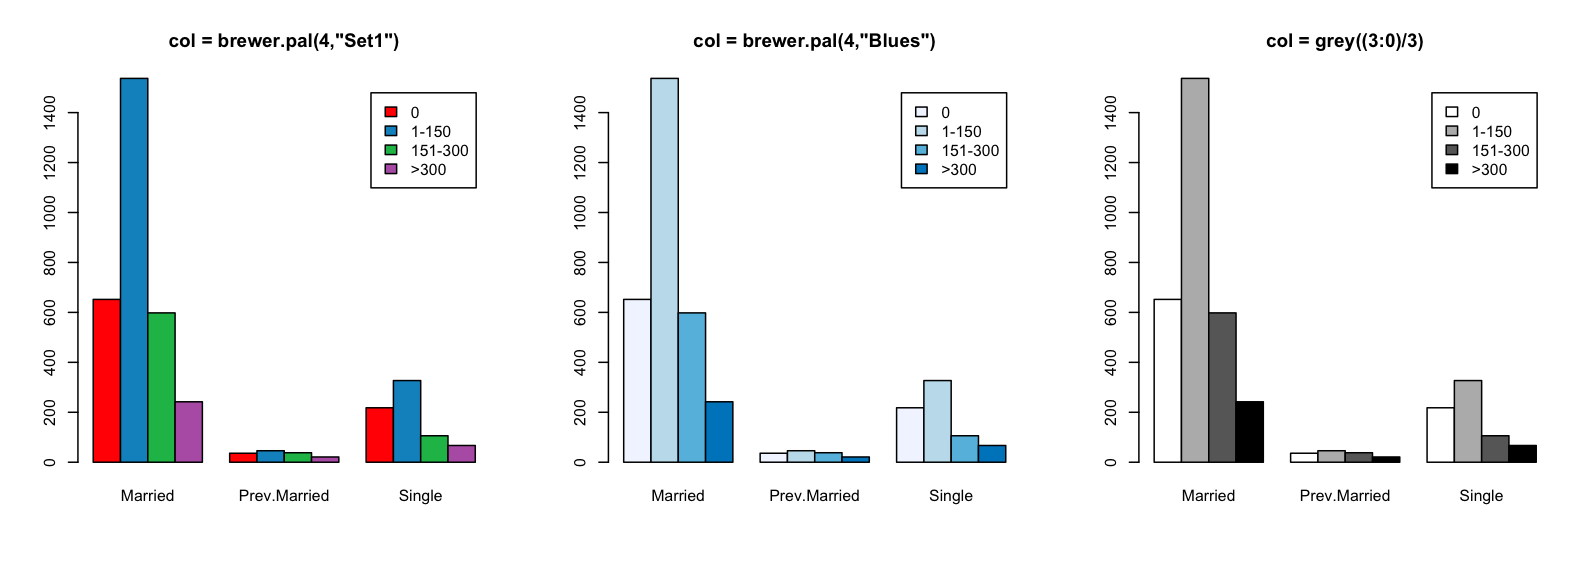 how to add a legend to a barplot in r